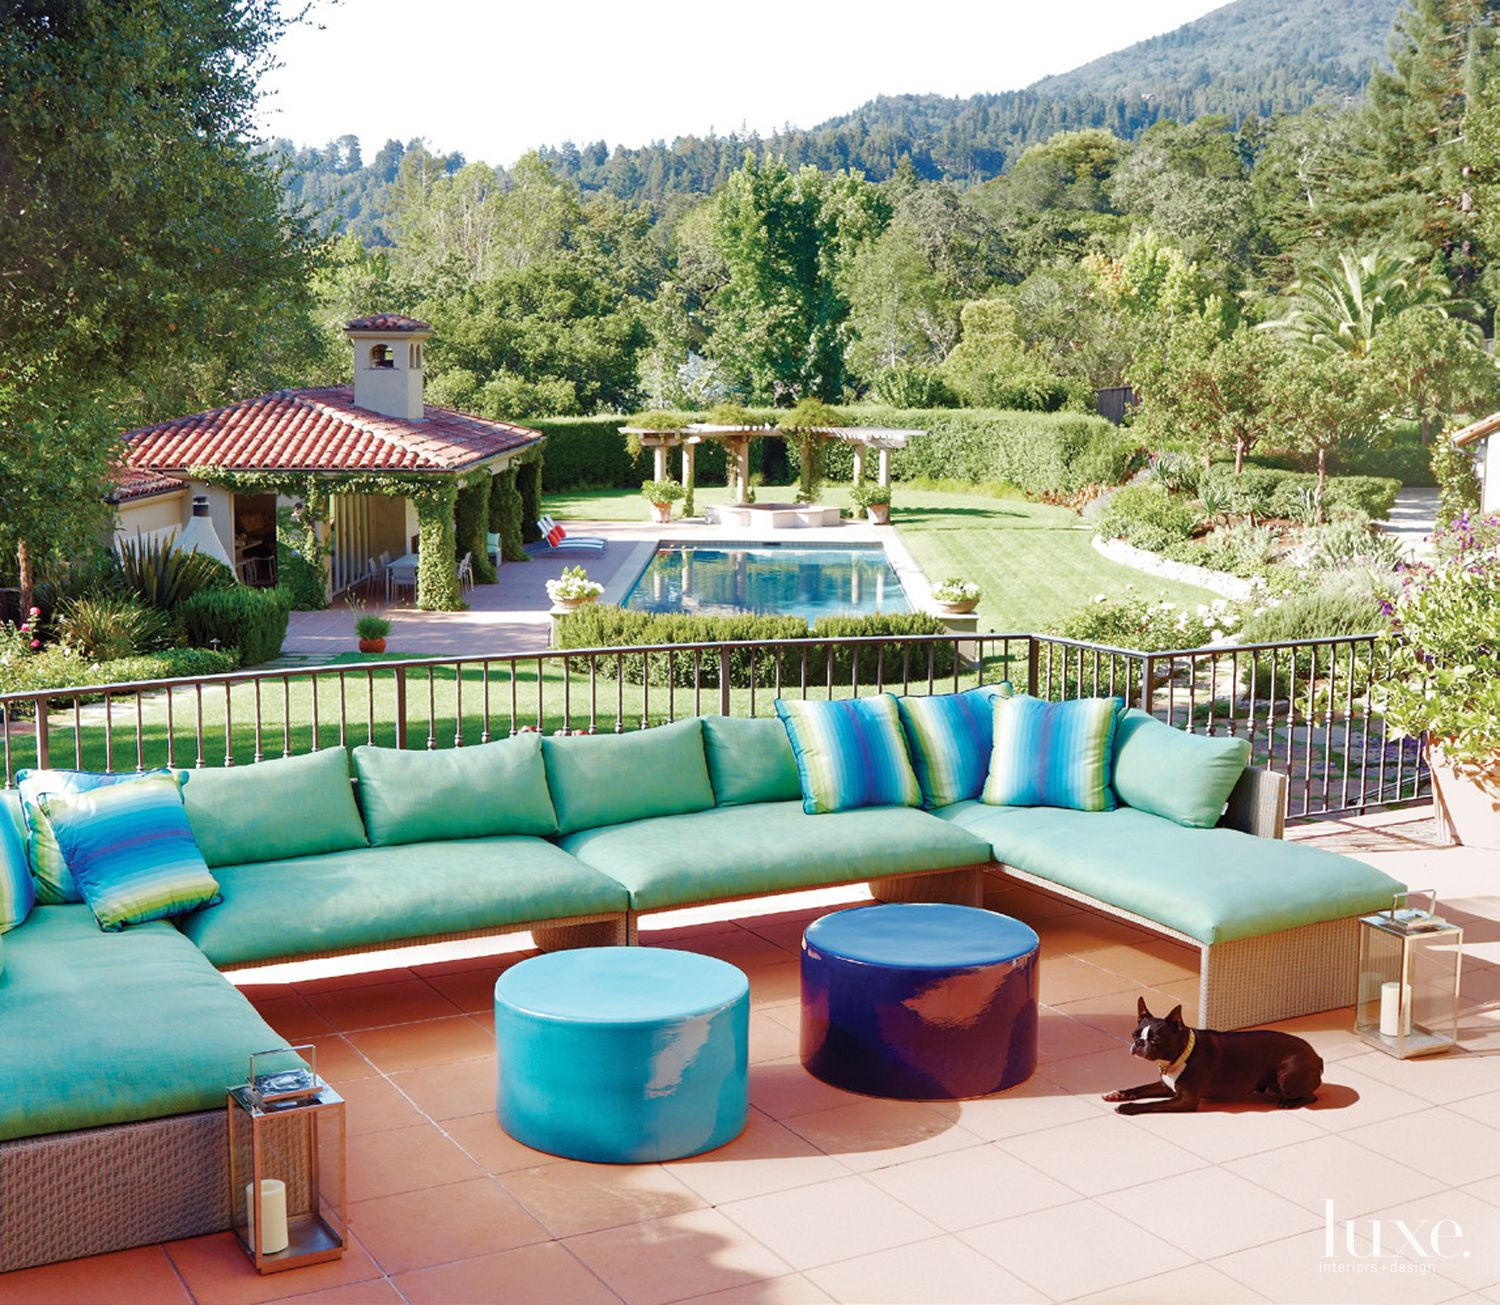 Mediterranean Terrace With Green Sofa